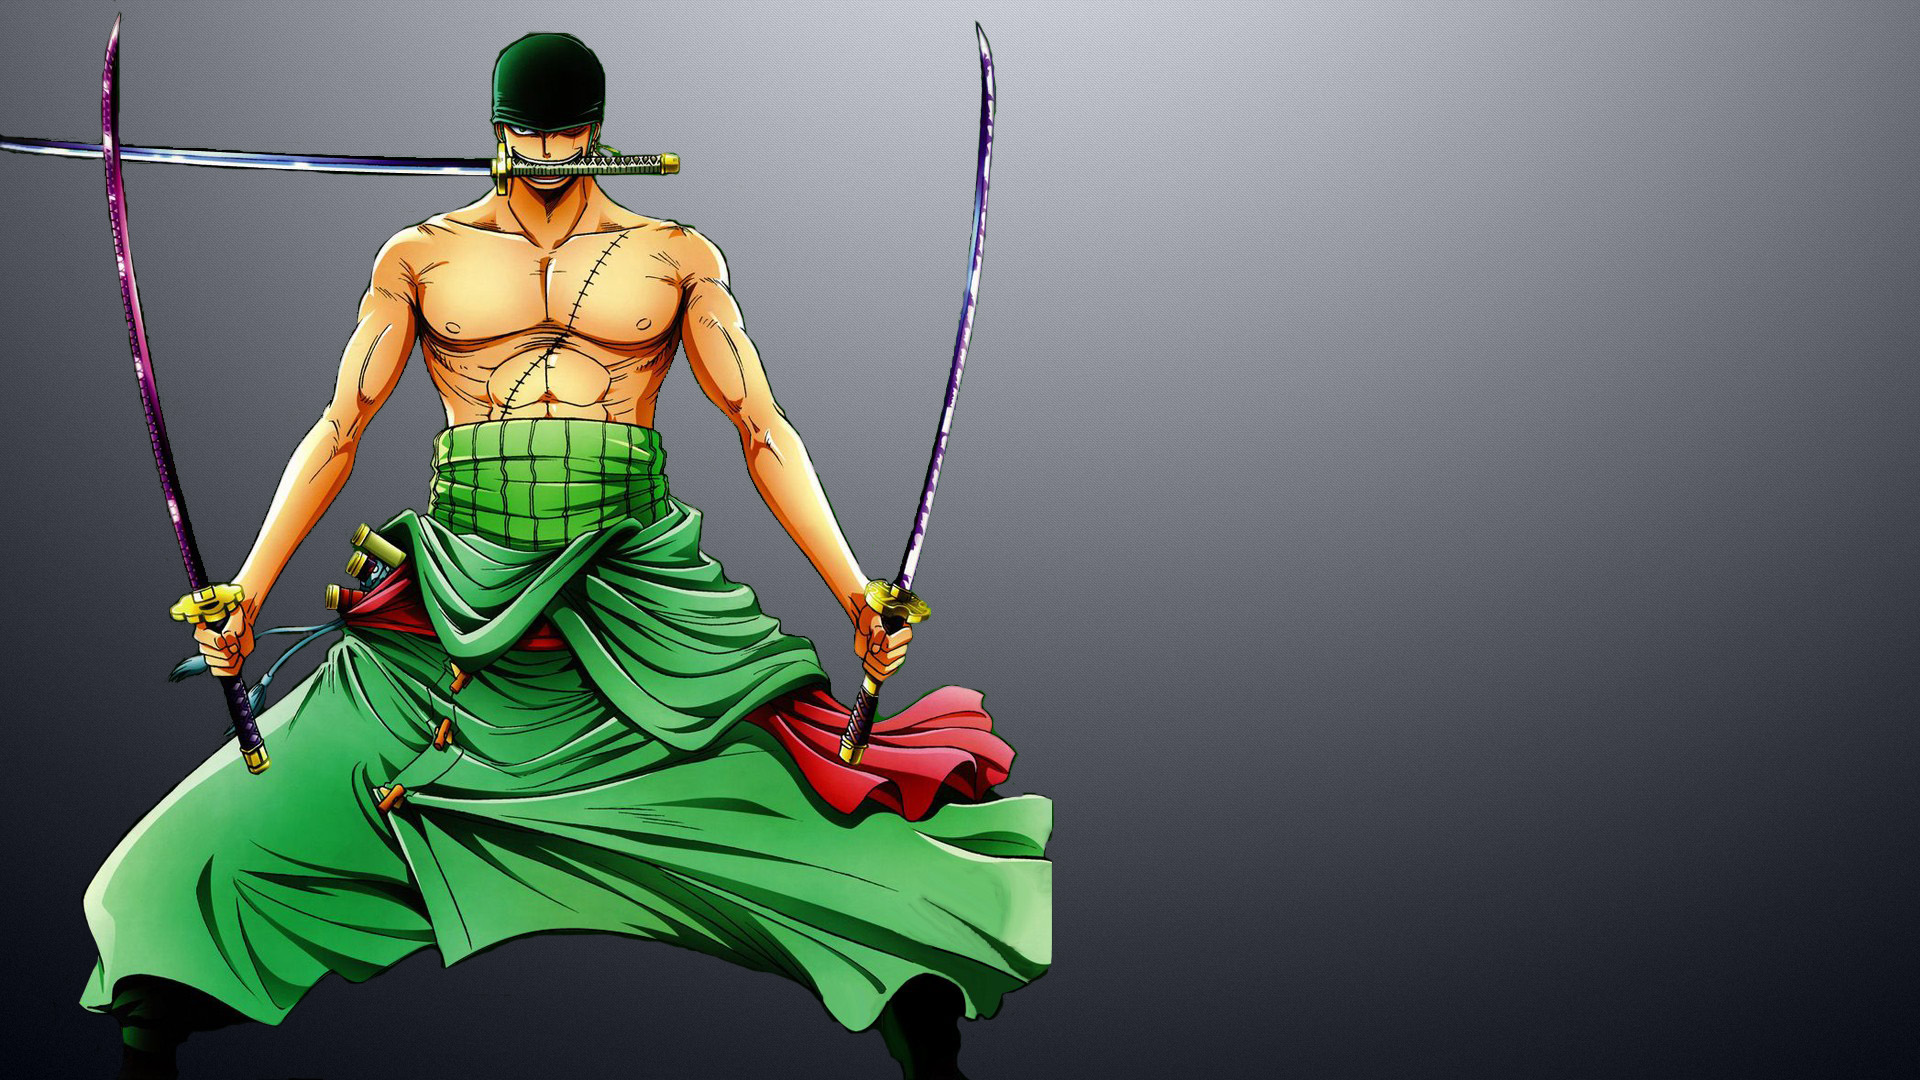 Roronoa Onepiece Zoro 1680x1050 Download Hd Wallpaper Wallpapertip